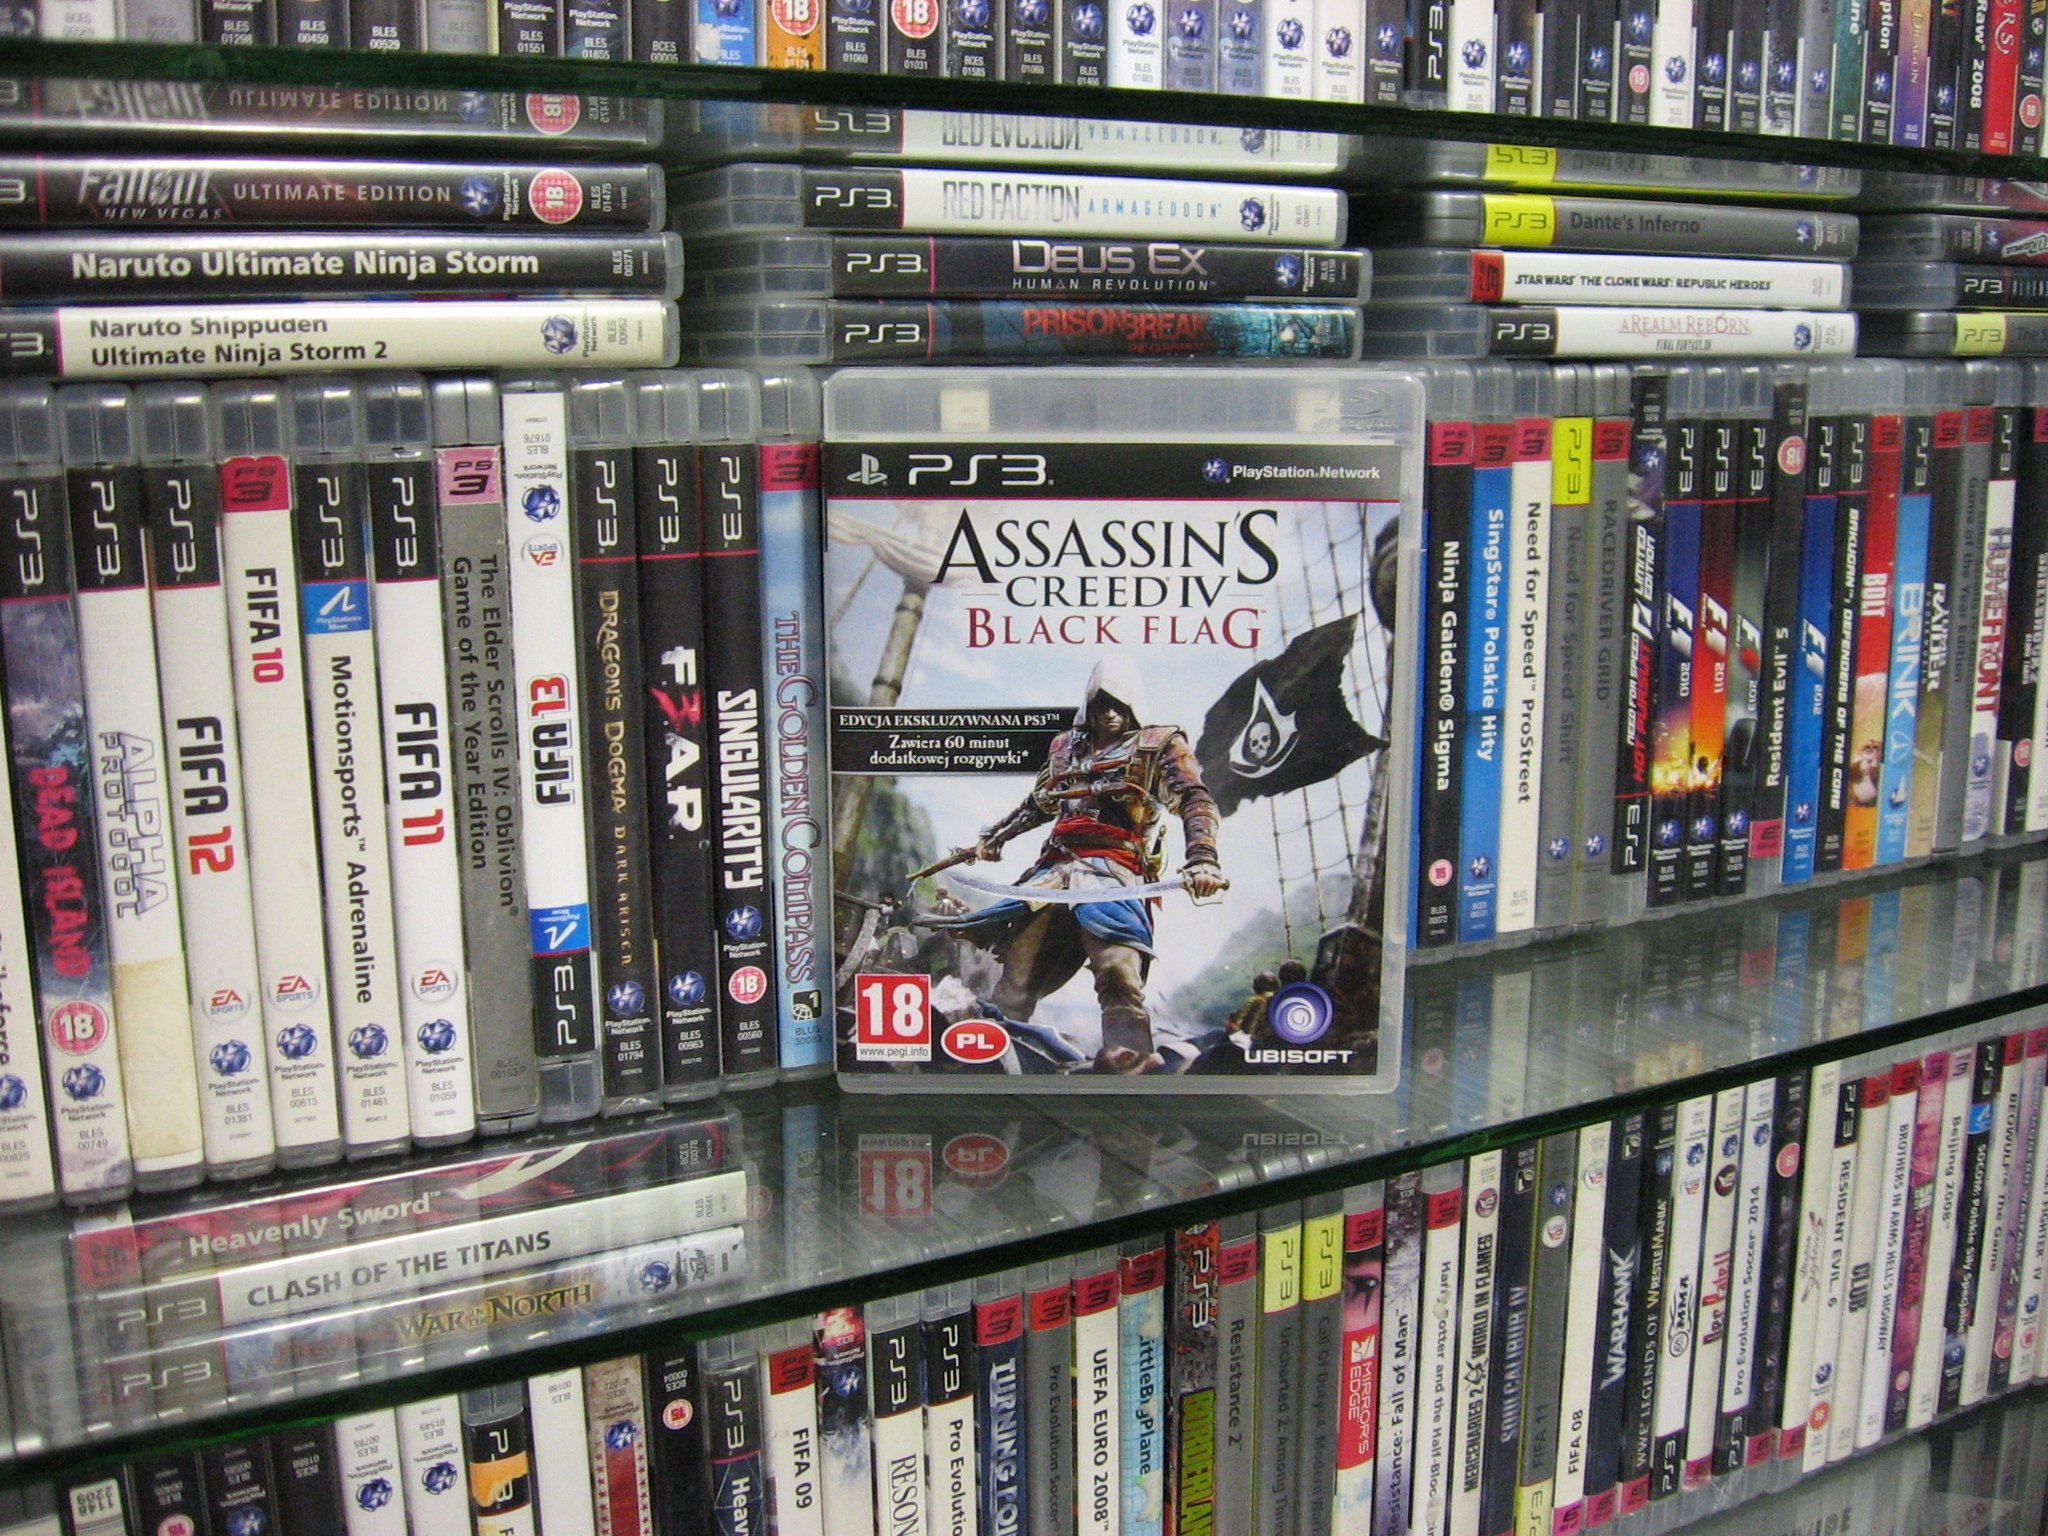 Assassin s Creed IV 4 Black Flag PL - GRA PS3 Opole 0079